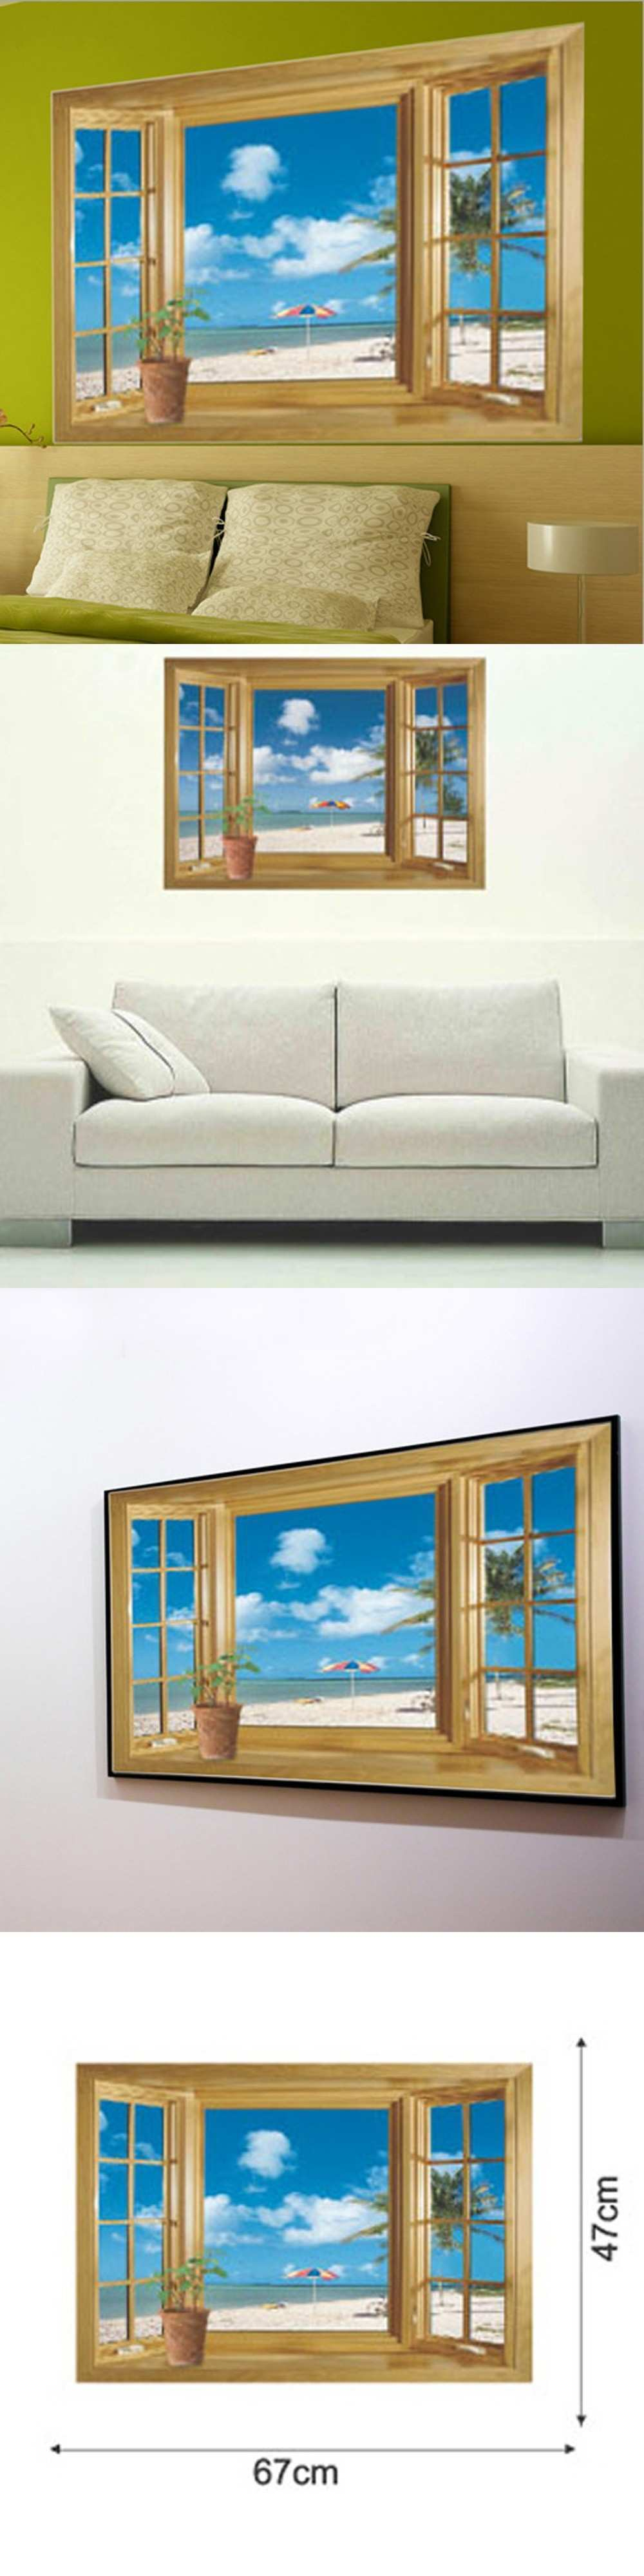 Beach Blue Sky 3D Window View Scenery Removable PVC Wall Sticker